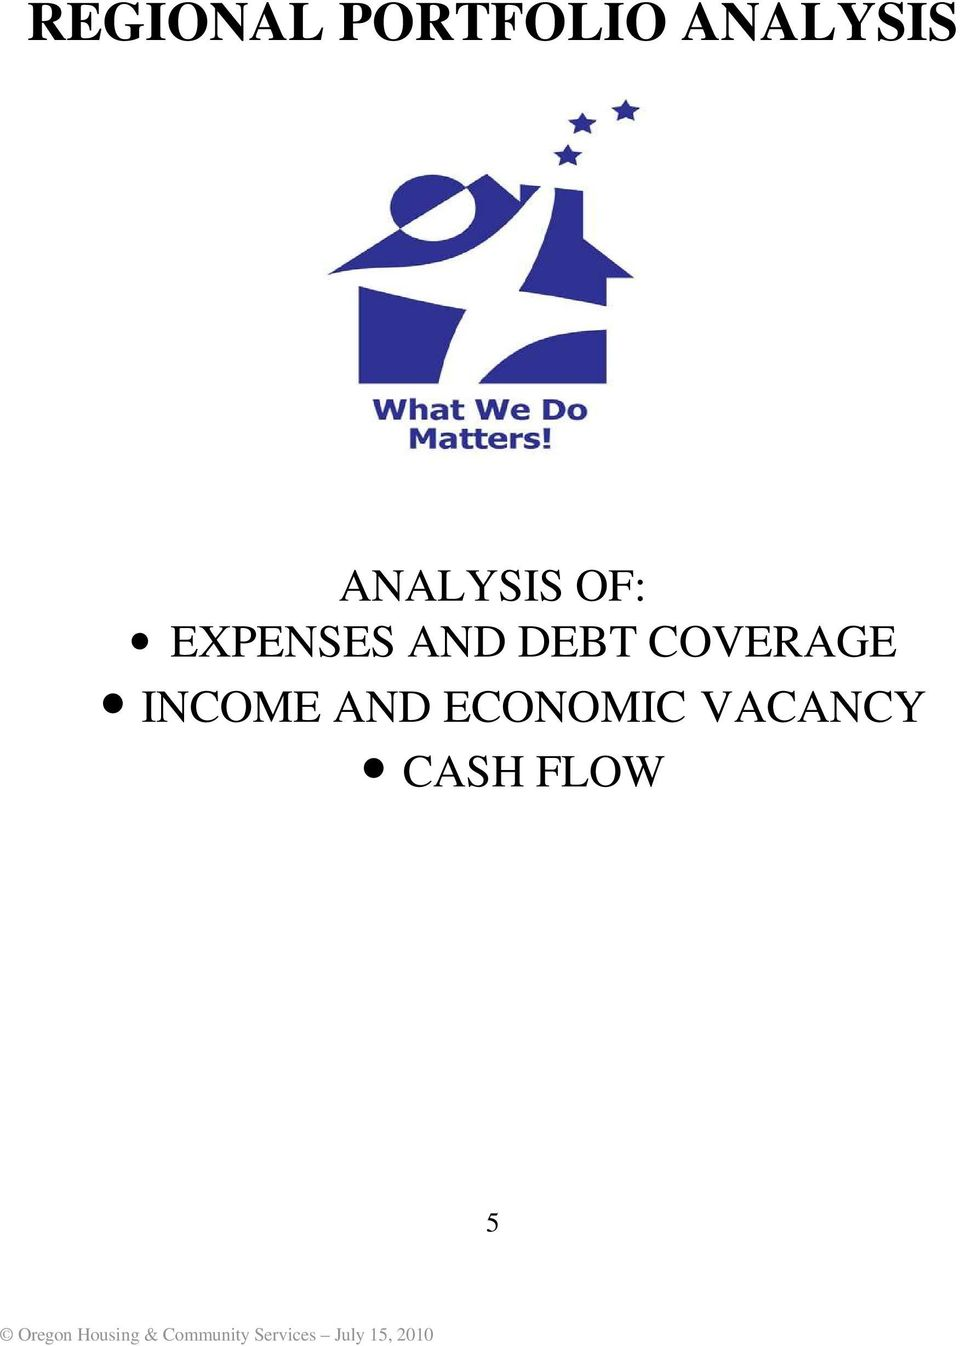 EXPENSES AND DEBT COVERAGE